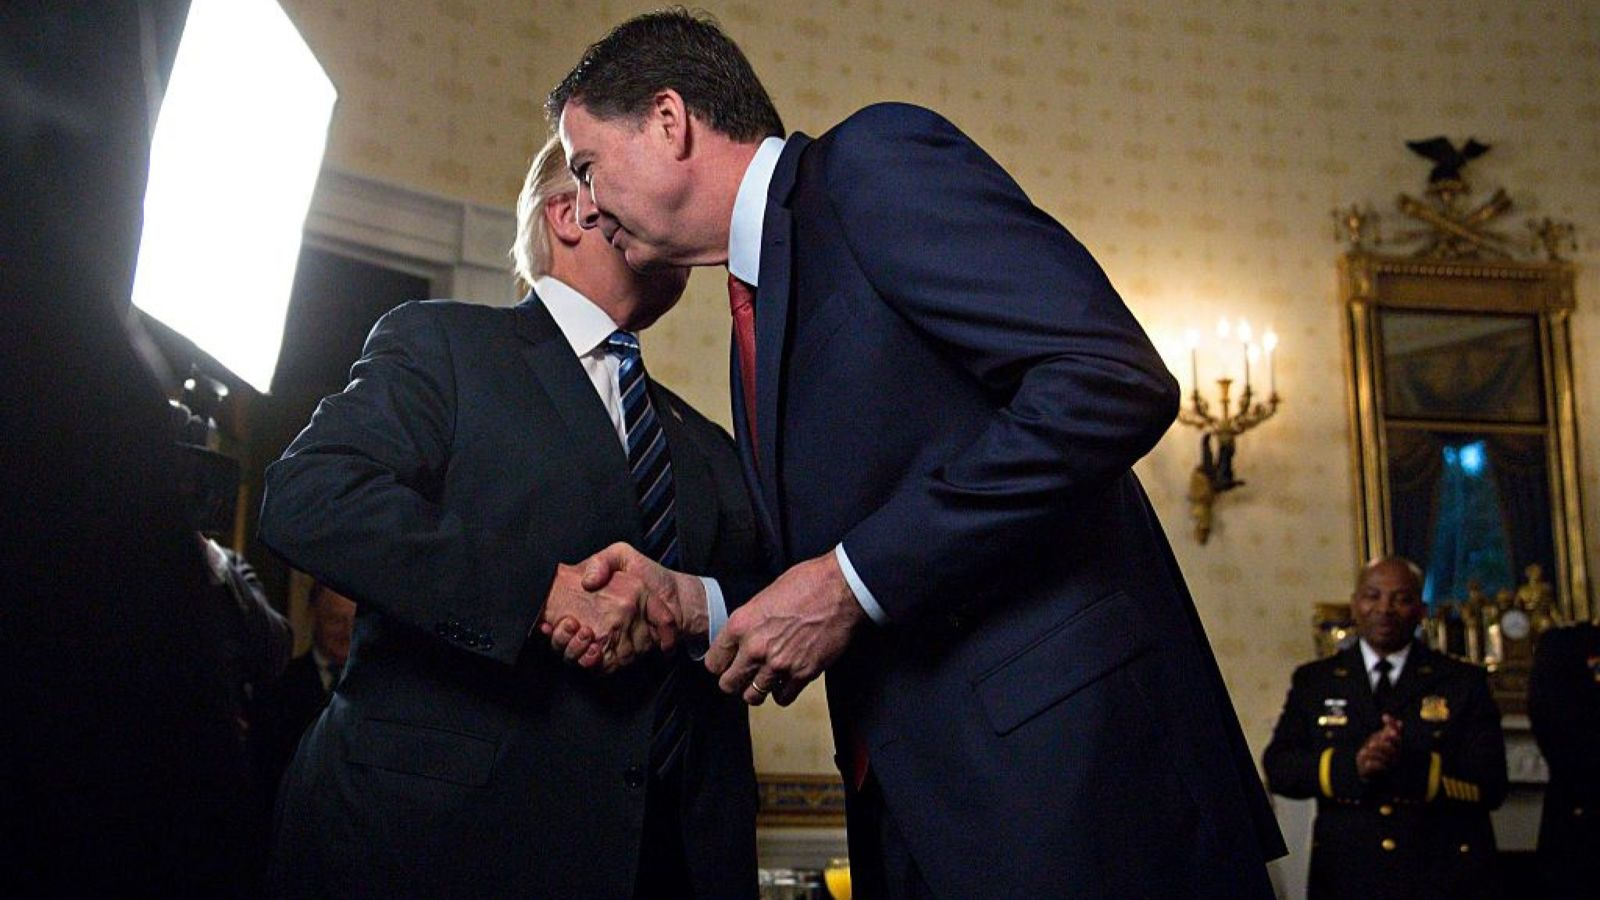 """WASHINGTON, DC - JANUARY 22: U.S. President Donald Trump (L) shakes hands with James Comey, director of the Federal Bureau of Investigation (FBI), during an Inaugural Law Enforcement Officers and First Responders Reception in the Blue Room of the White House on January 22, 2017 in Washington, DC. Trump today mocked protesters who gathered for large demonstrations across the U.S. and the world on Saturday to signal discontent with his leadership, but later offered a more conciliatory tone, saying he recognized such marches as a """"hallmark of our democracy."""" (Photo by Andrew Harrer-Pool/Getty Images)"""